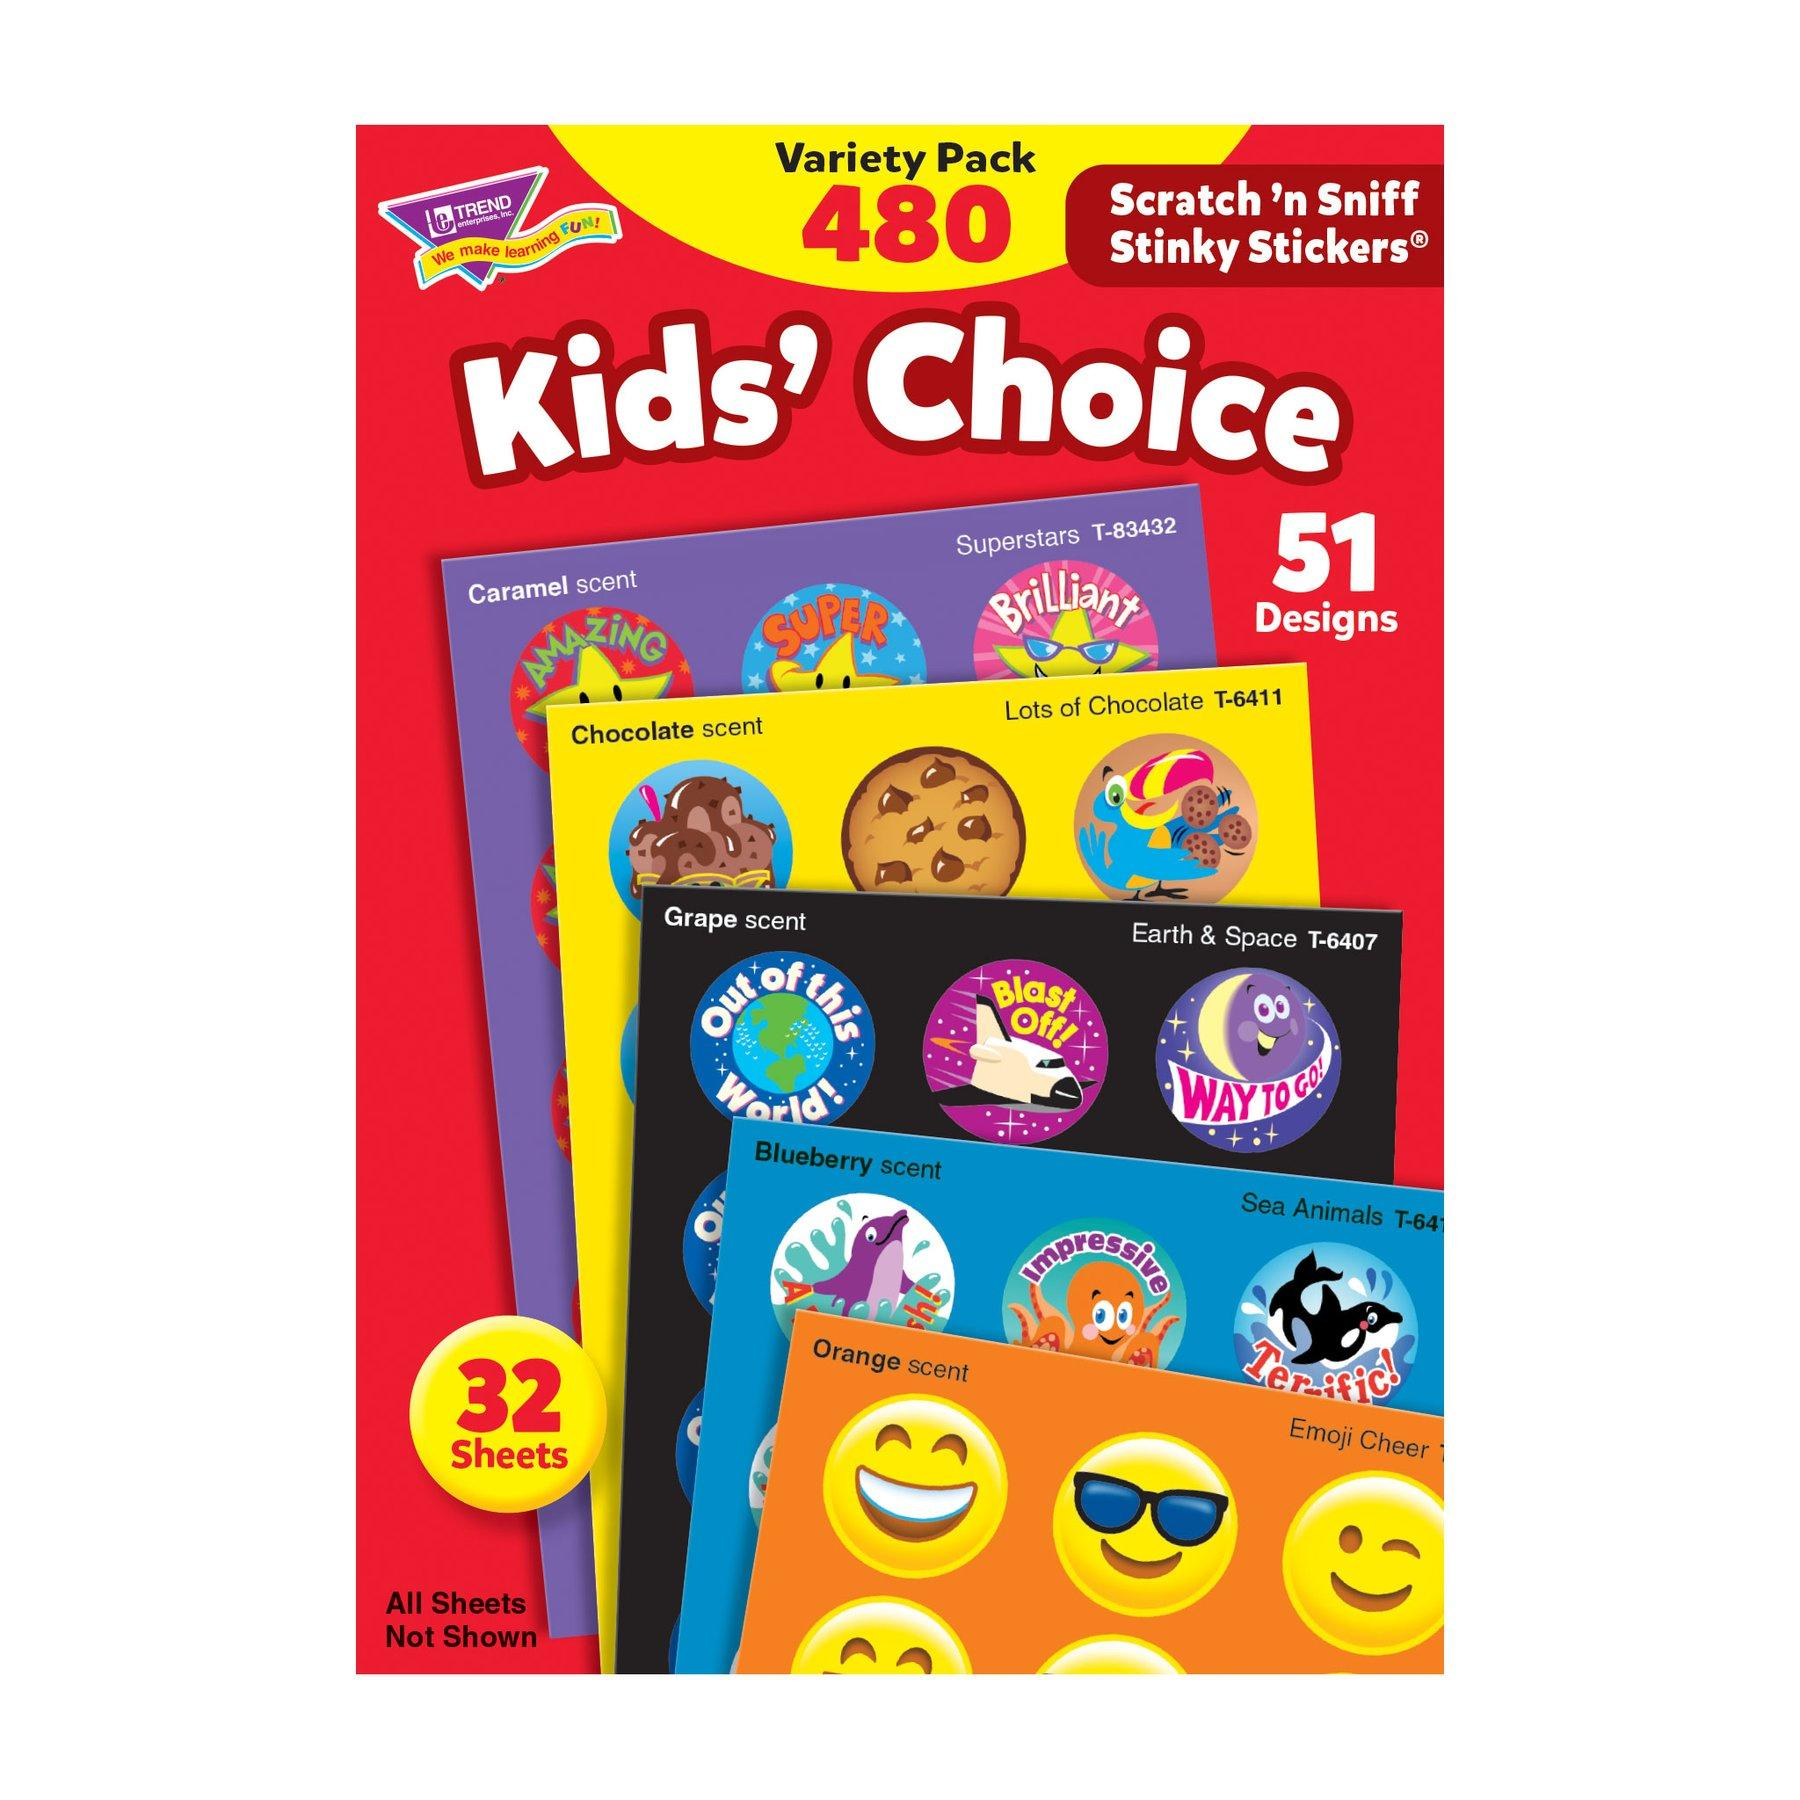 Stinky Stickers | Kid's Choice Stinky Stickers - Autocollants Récompense Parfumés Allemand x 480